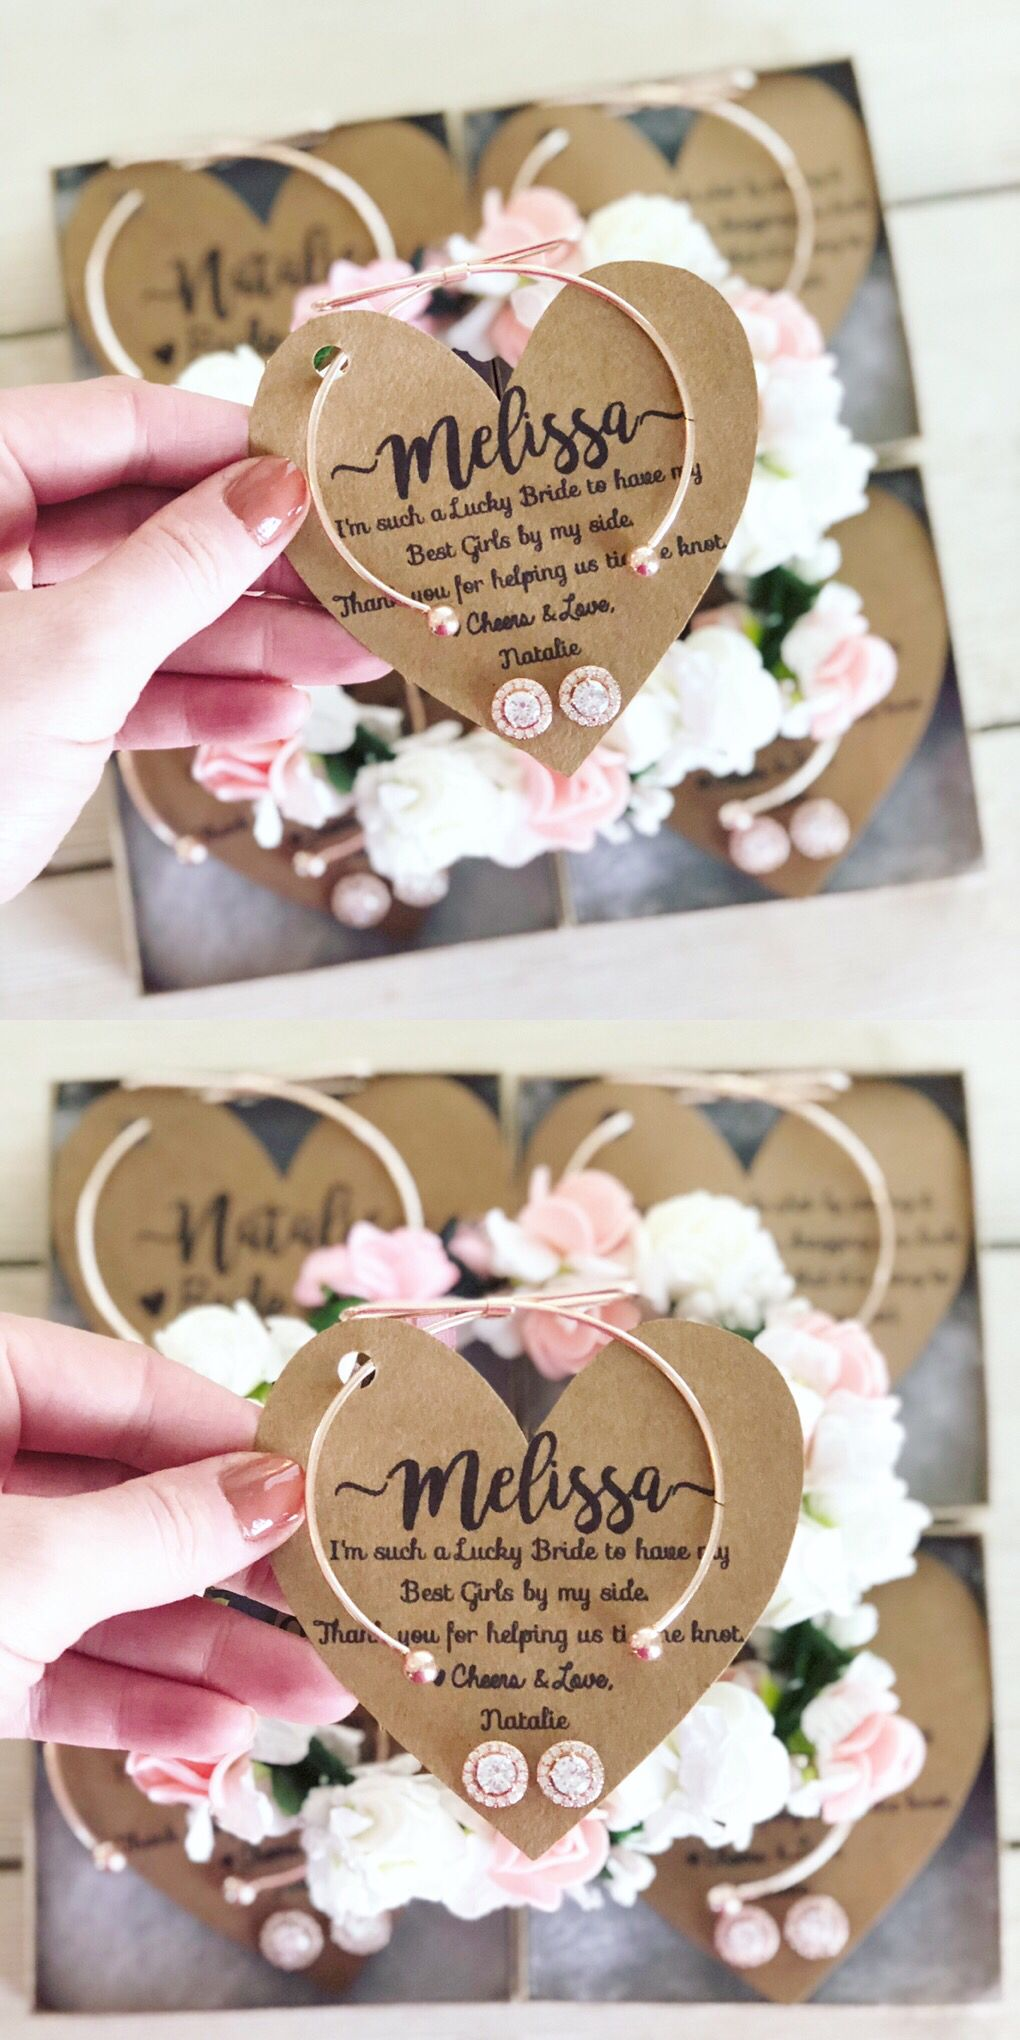 Affordable bridesmaid gifts! & Affordable bridesmaid gifts! | Personalized Bridemaid Gifts in 2019 ...